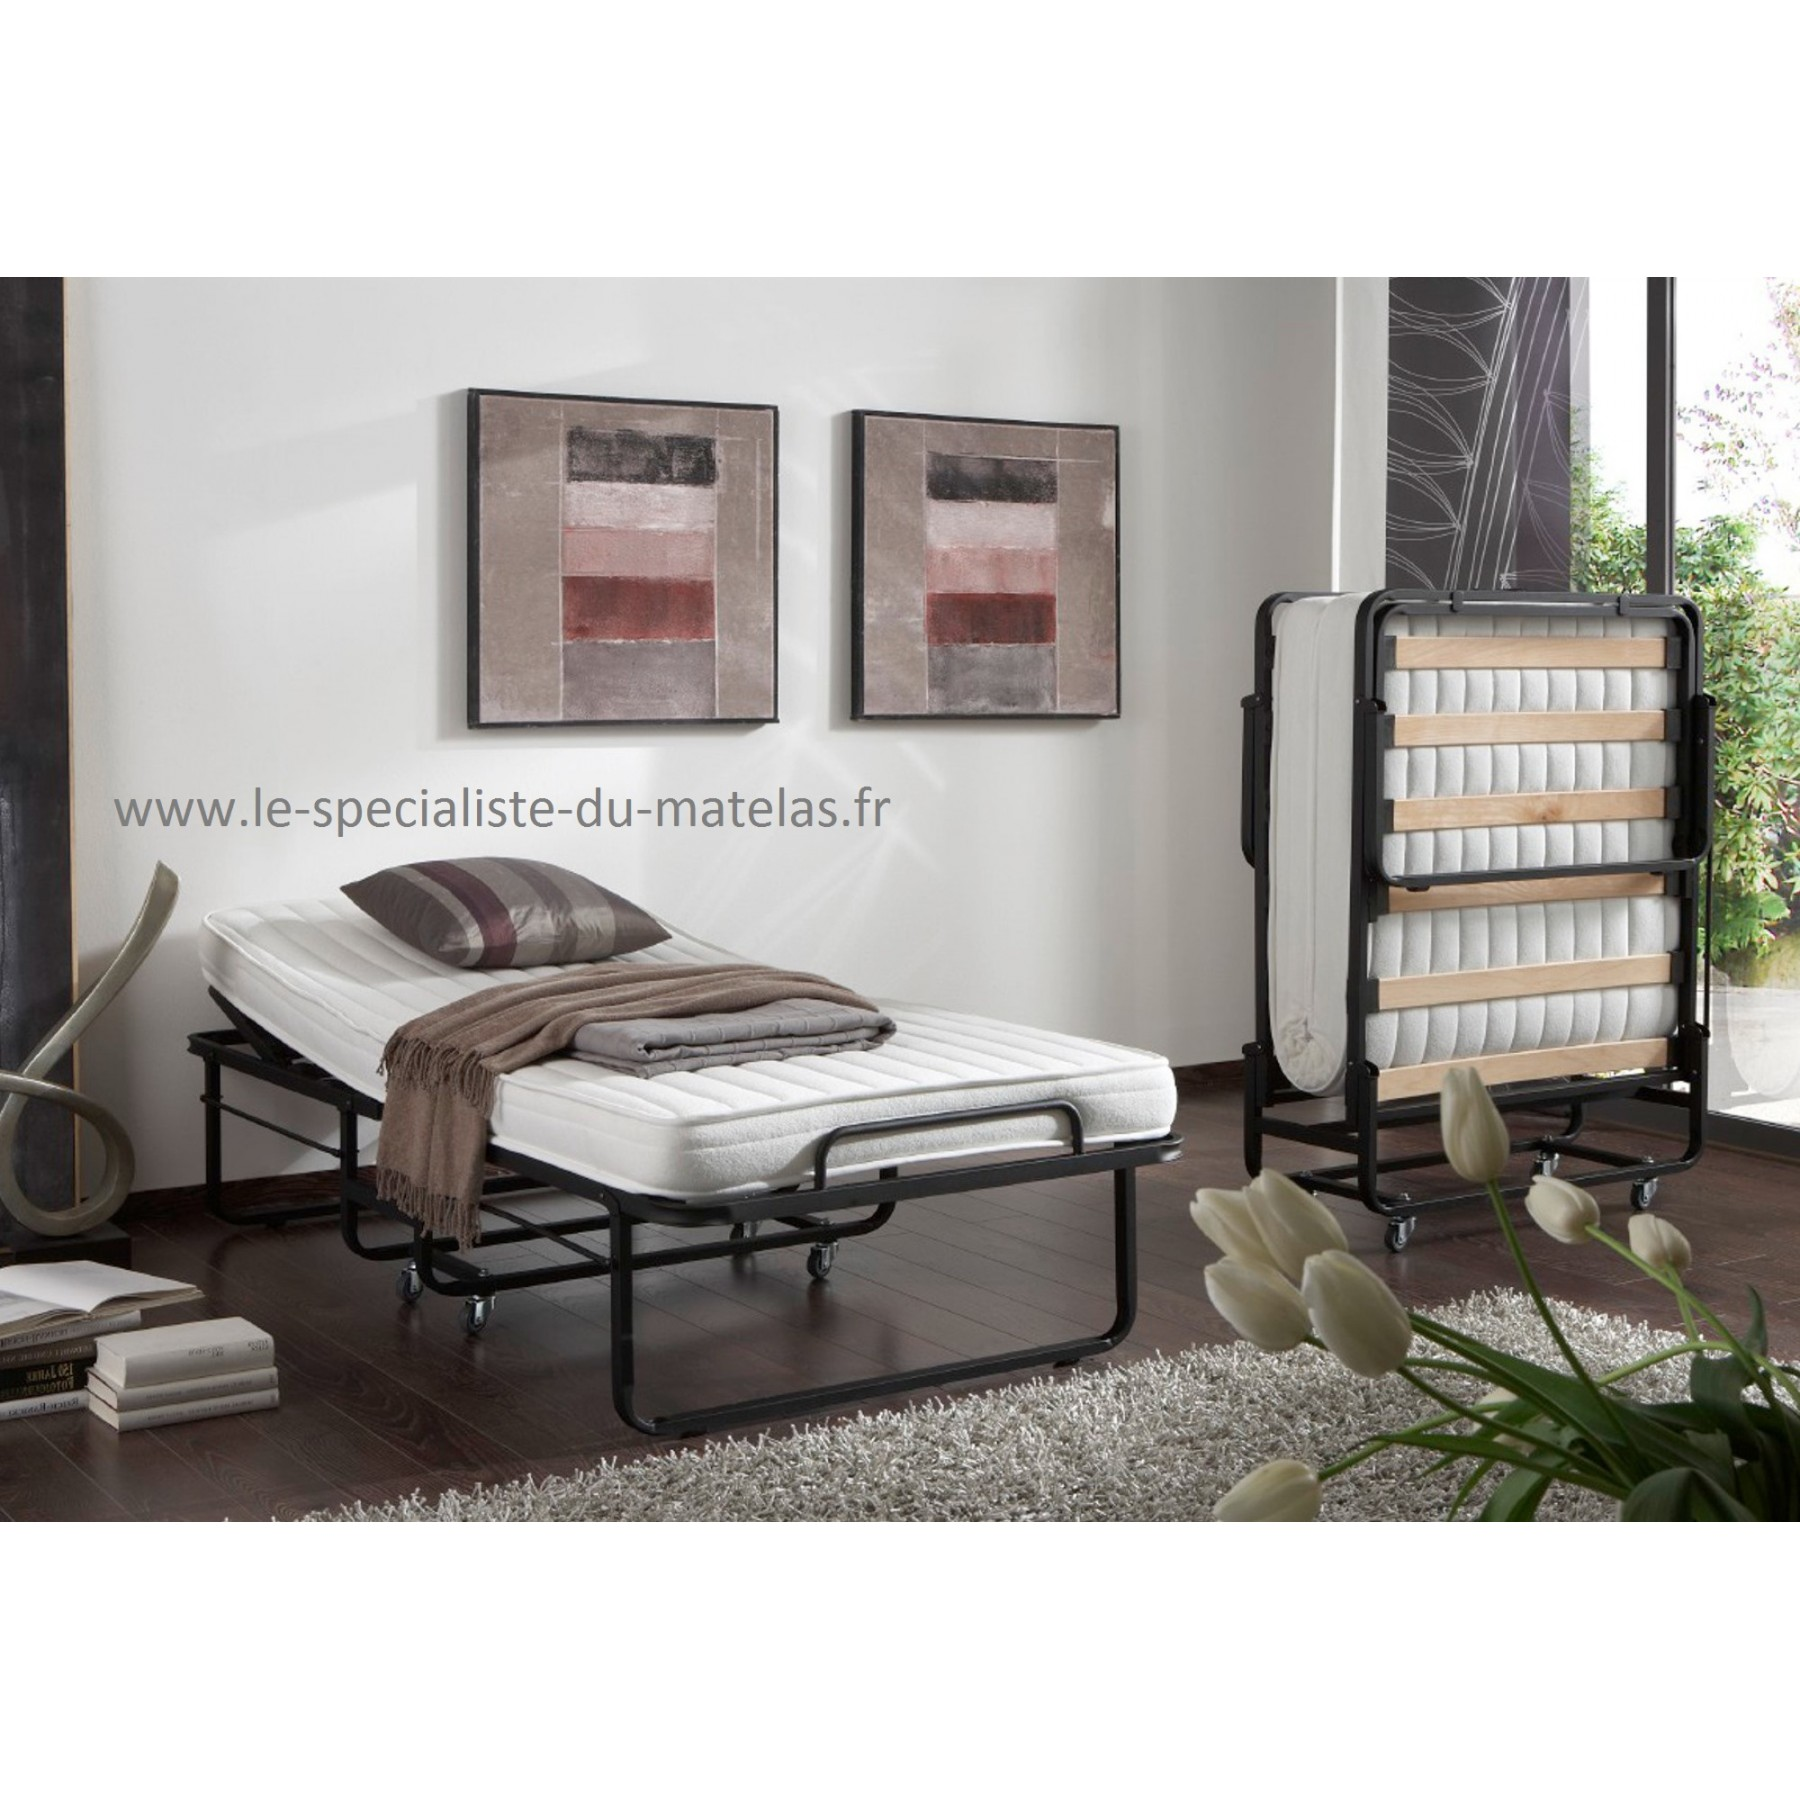 lit pliant lattes avec t te relevable d couvrir au le sp cialiste du matelas. Black Bedroom Furniture Sets. Home Design Ideas